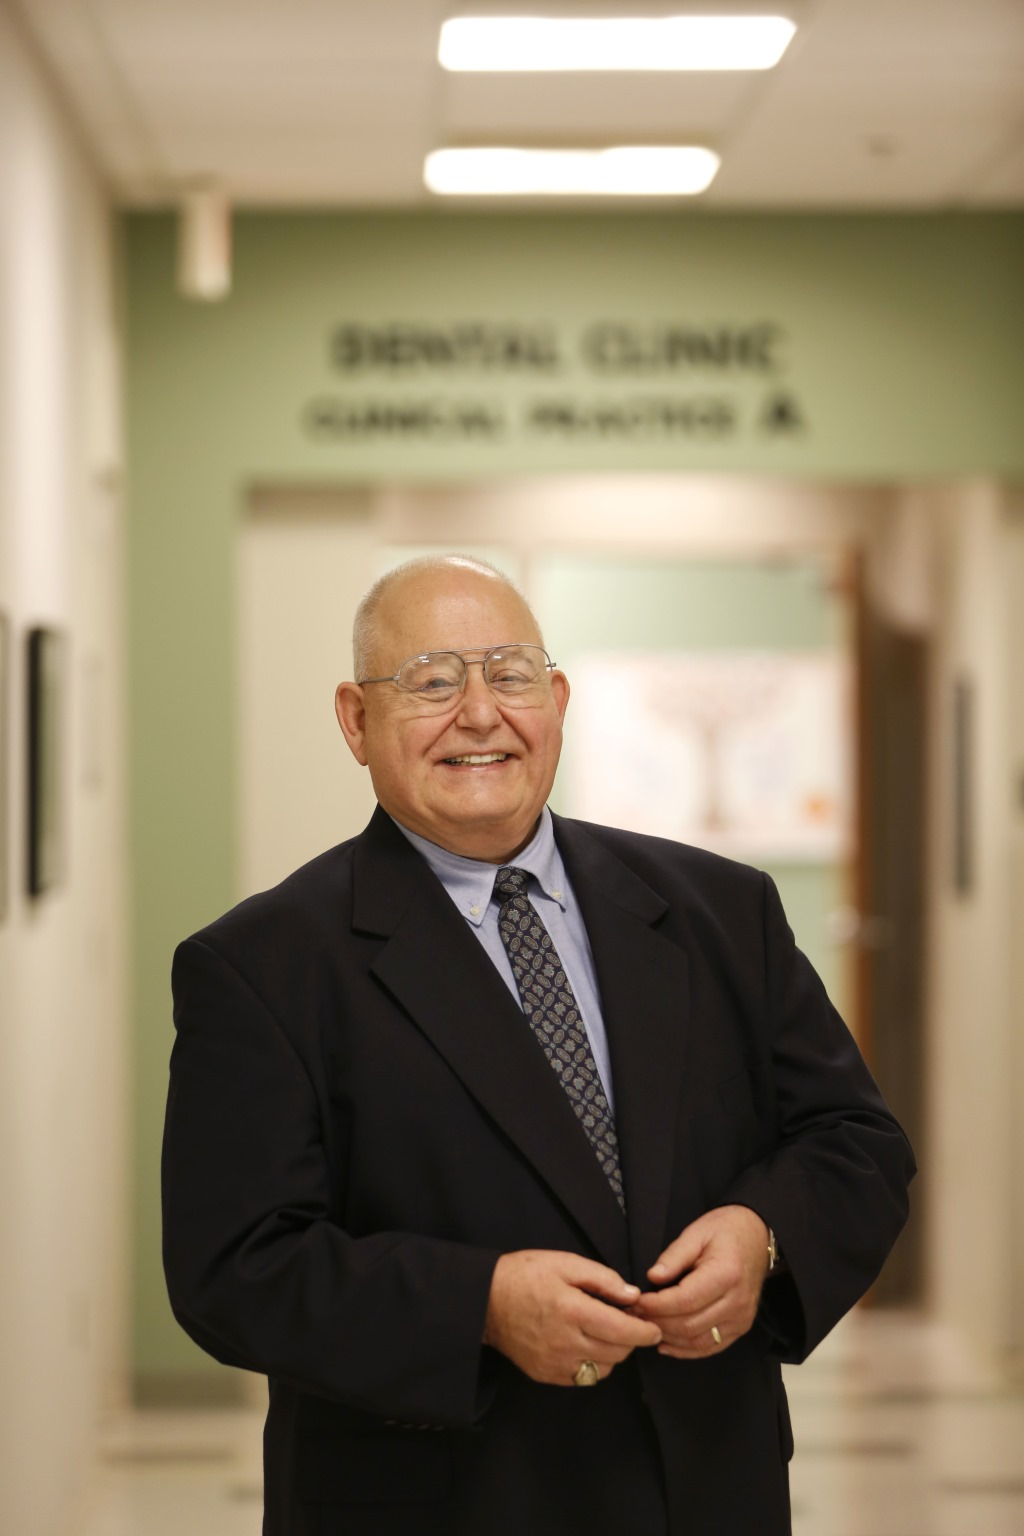 Marquette alumnus makes largest gift in School of Dentistry history